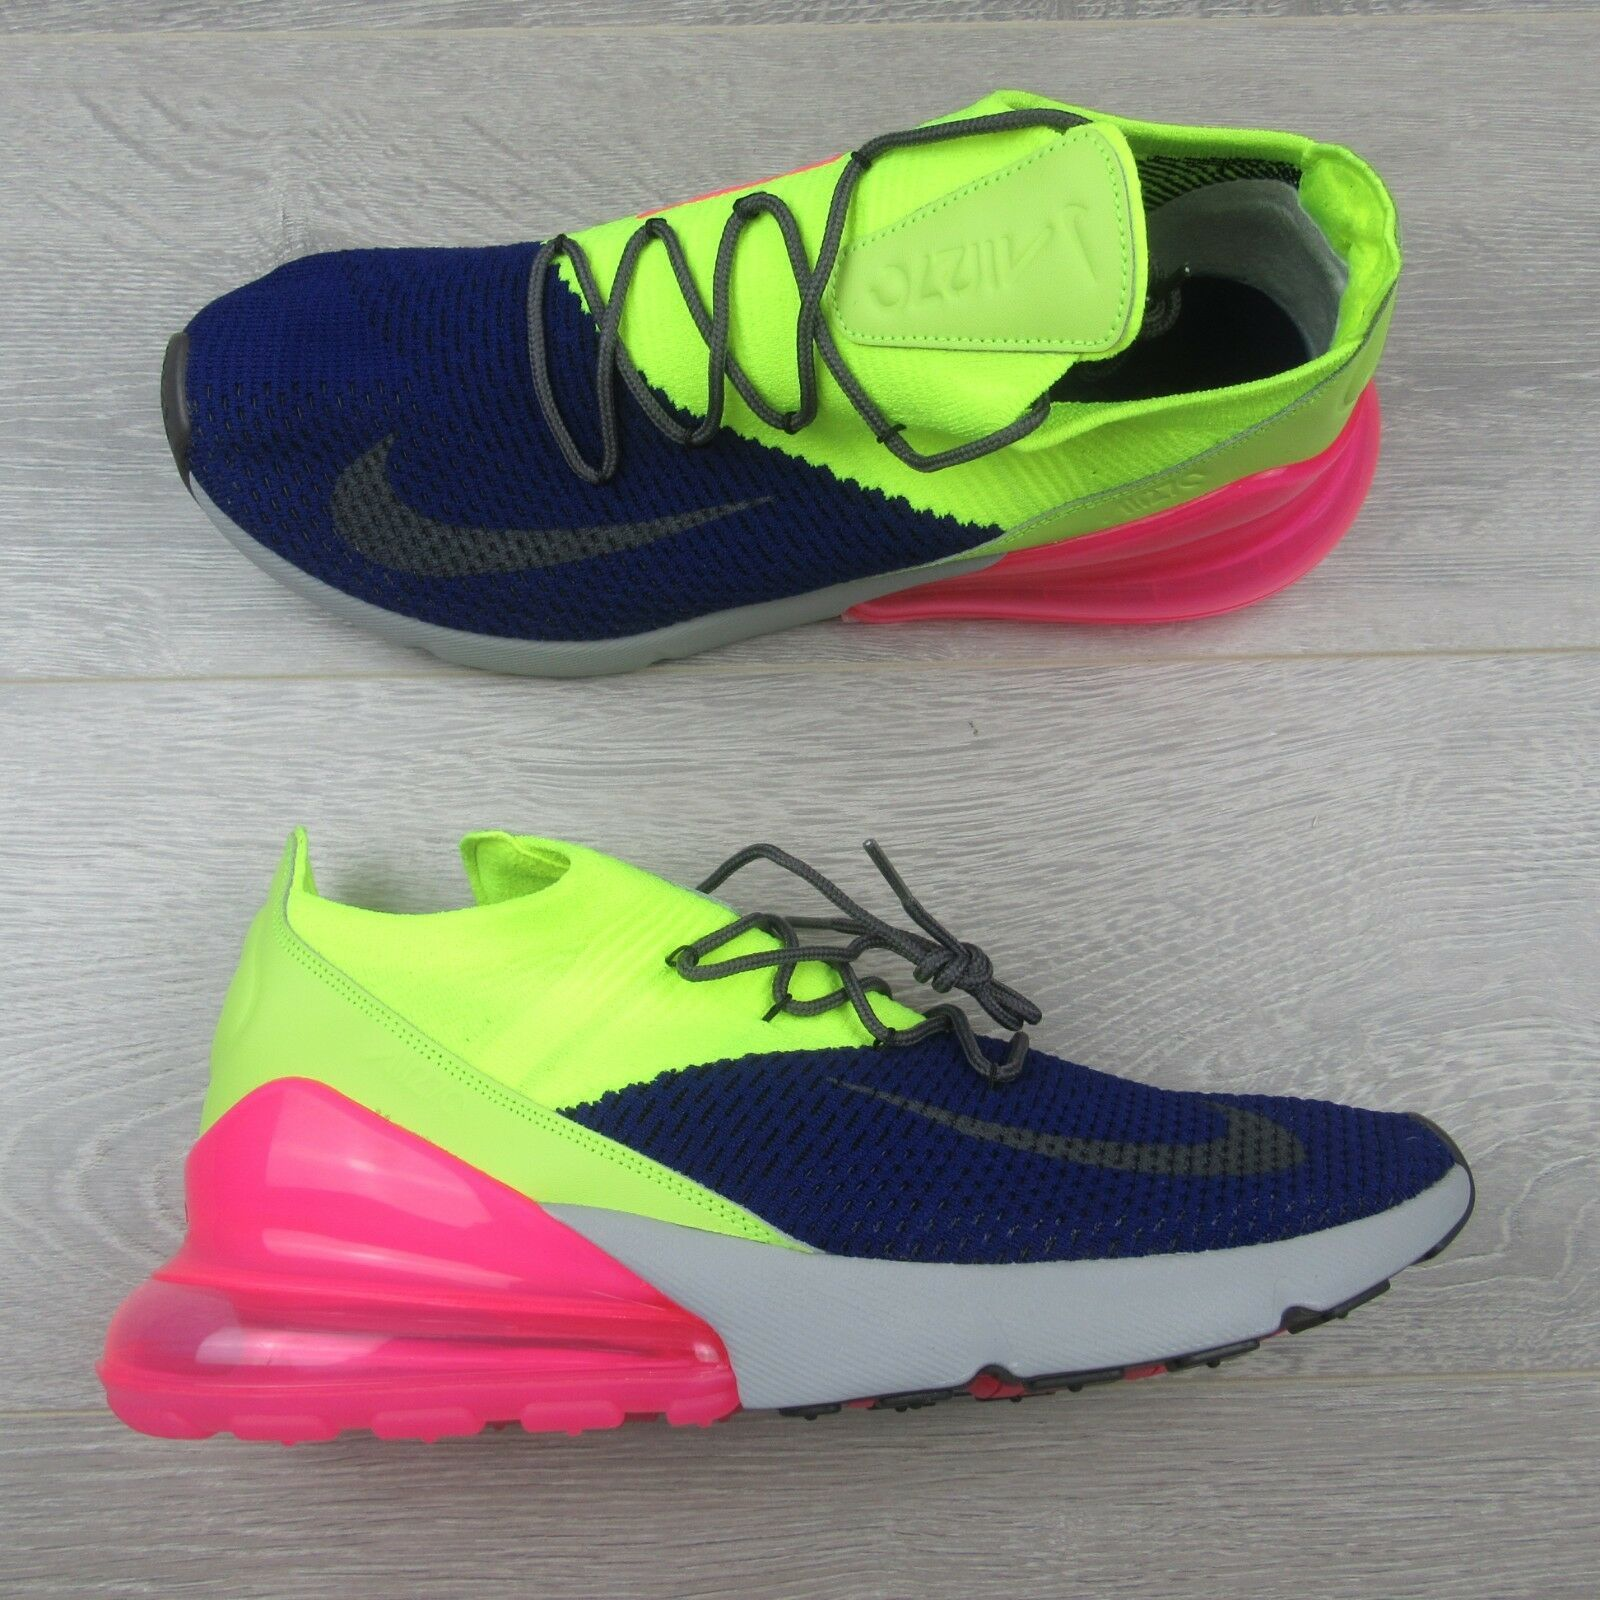 a2282e4c49b5 Nike Air Max 270 Flyknit Regency Purple Grey Volt AO1023 501 Mens Size 13  New